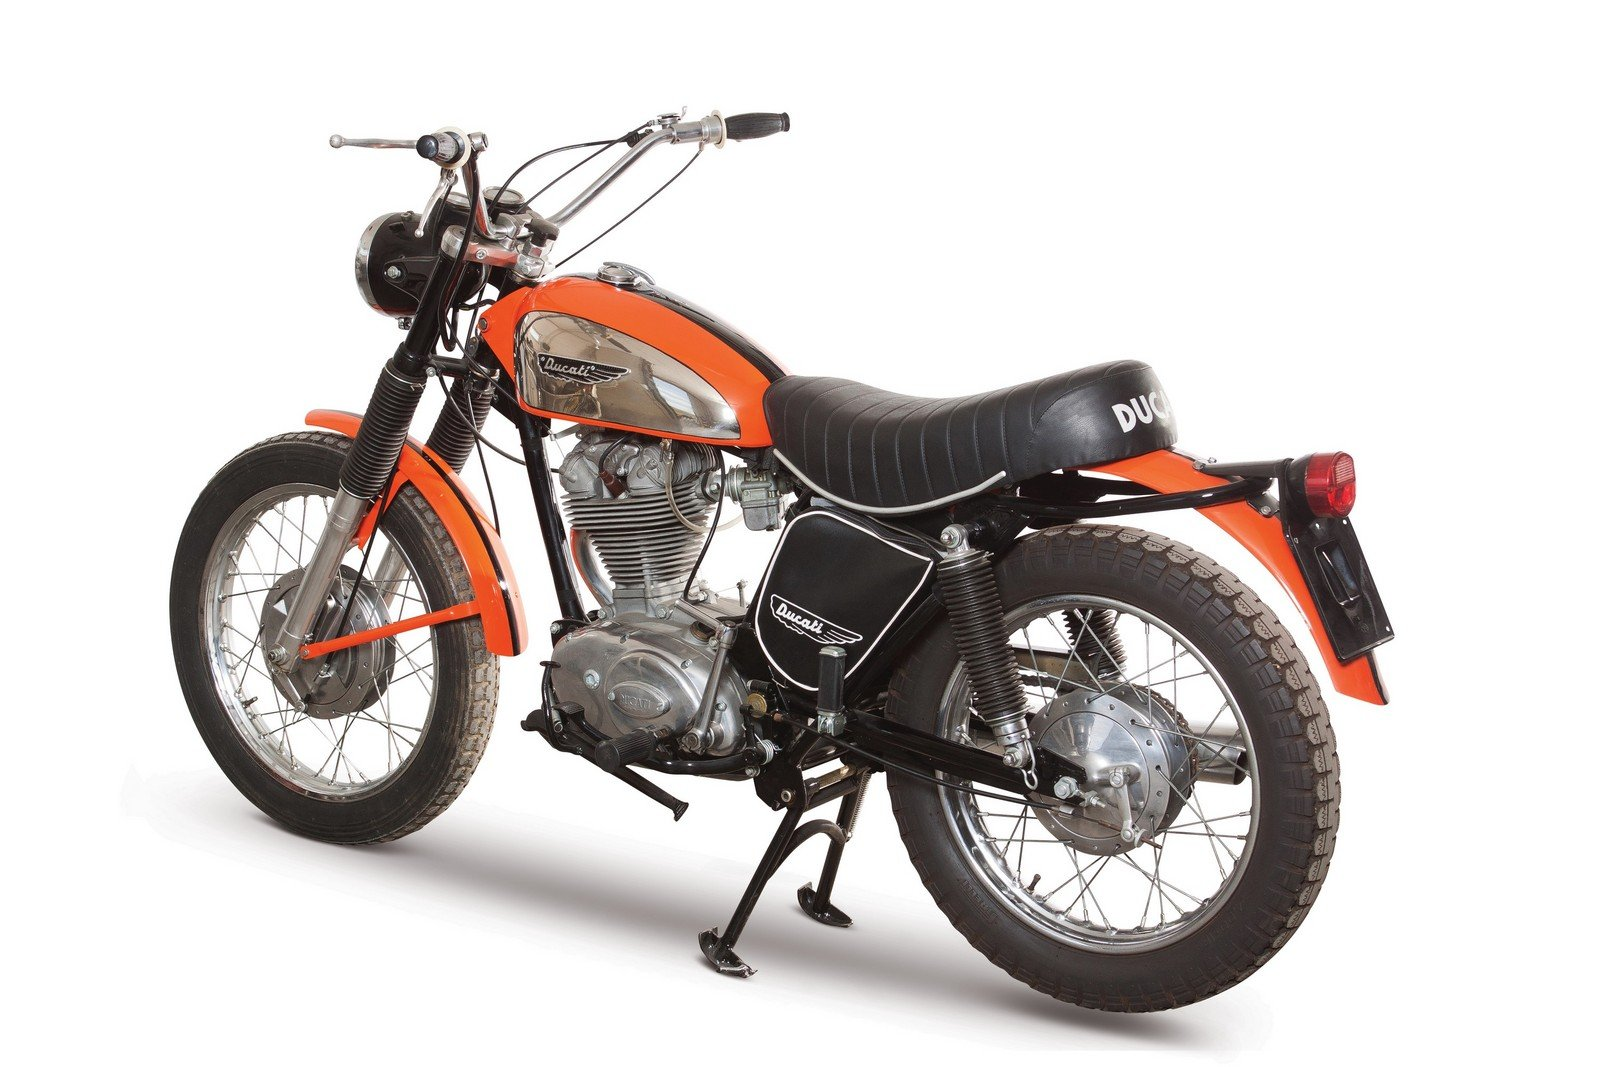 1973 ducati 350 scrambler picture 455026 motorcycle review top speed. Black Bedroom Furniture Sets. Home Design Ideas